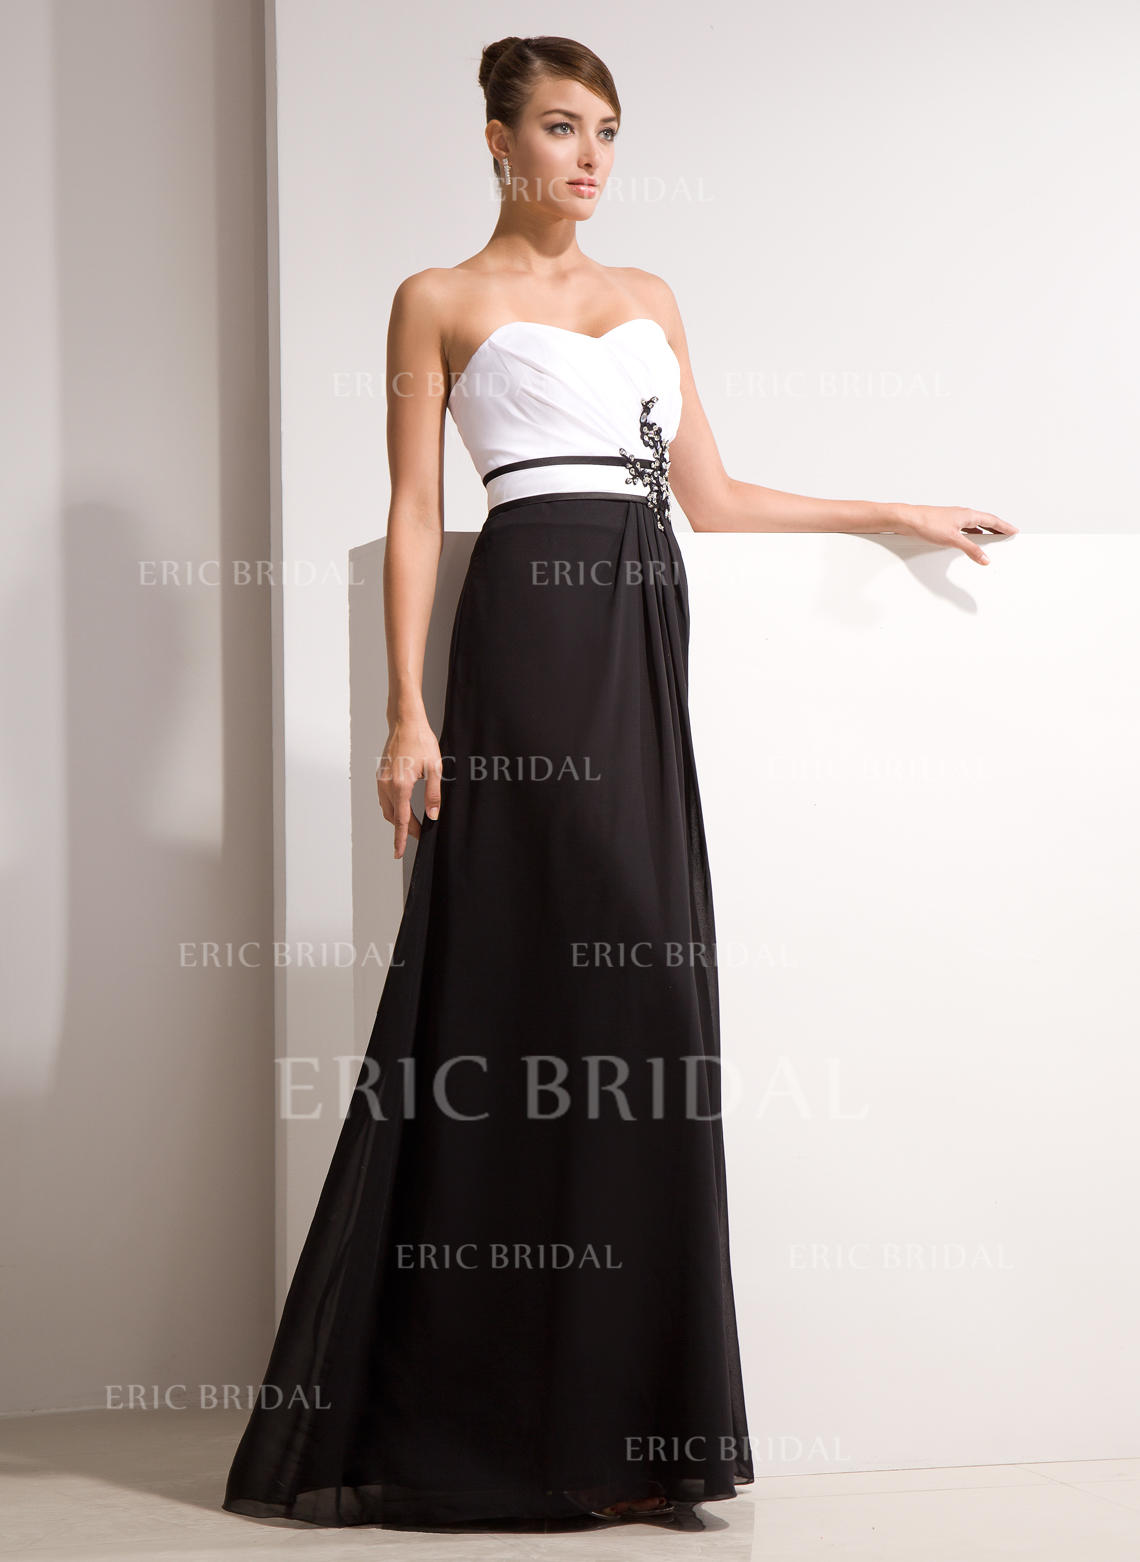 A-Line Princess Sweetheart Floor-Length Evening Dresses With Ruffle Beading  Appliques Lace. Loading zoom ad1df1e70